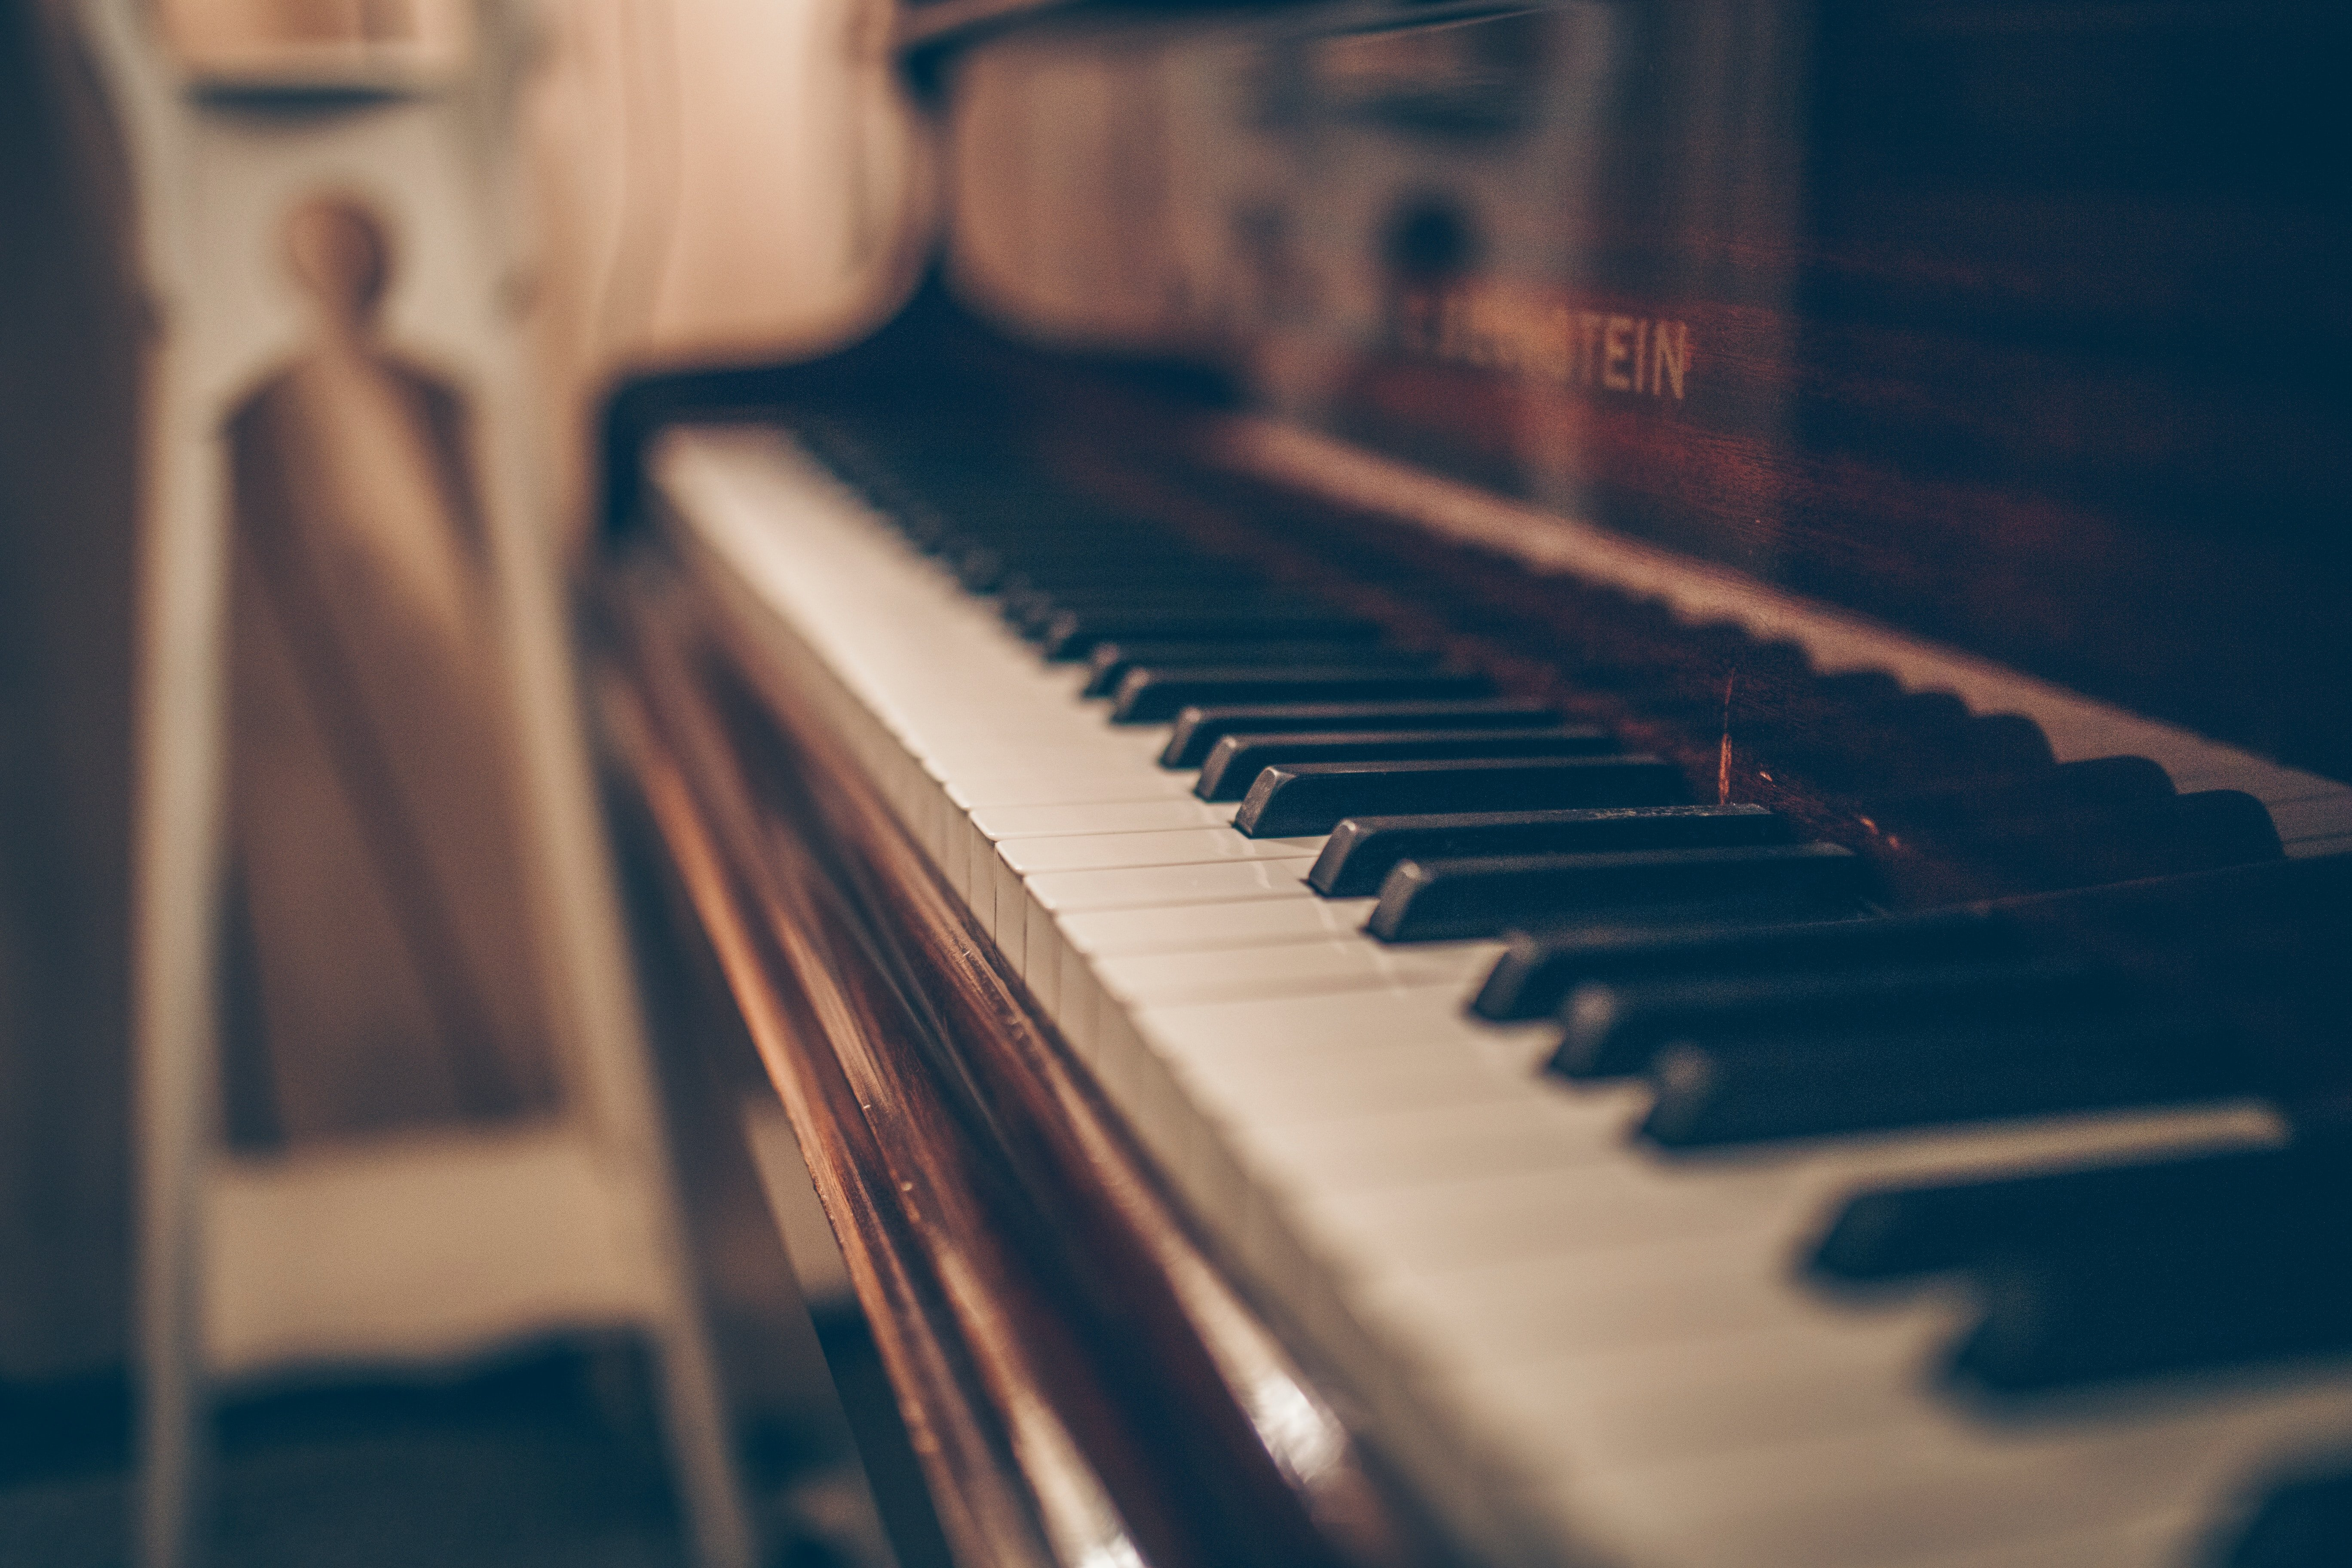 An old piano. | Source: Unsplash